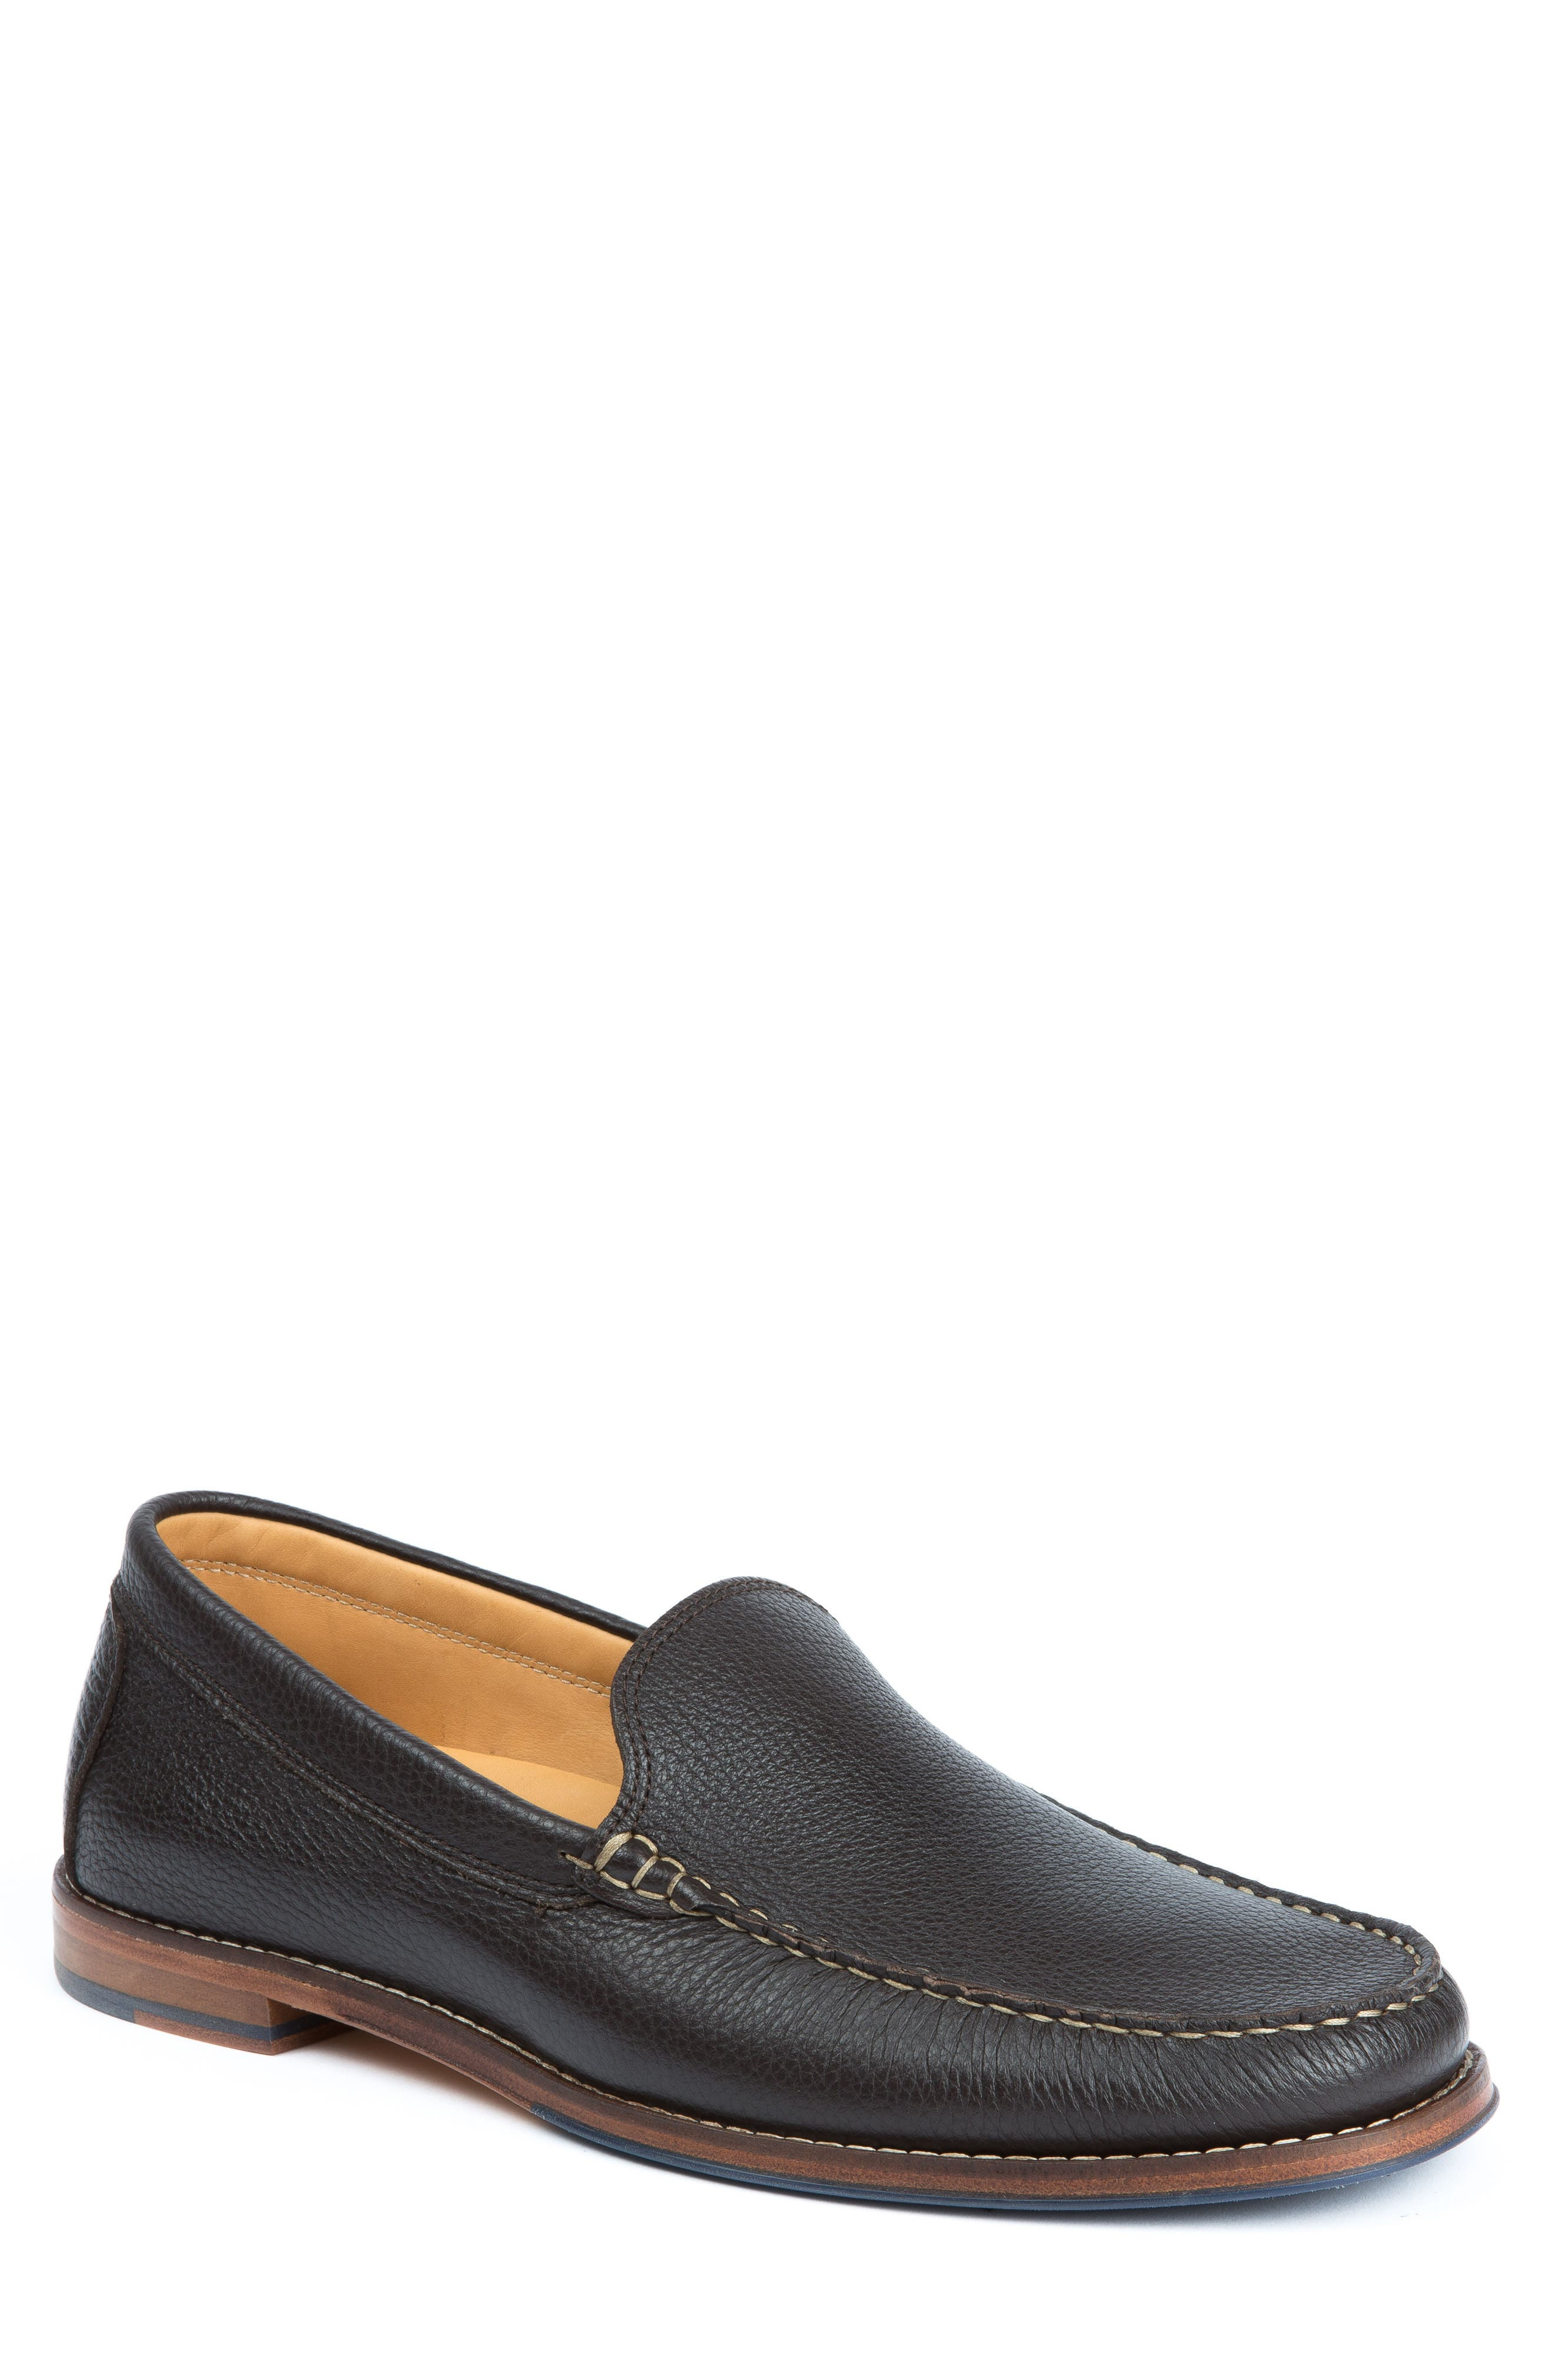 Main Image - Austen Heller Caldwells Loafer (Men)